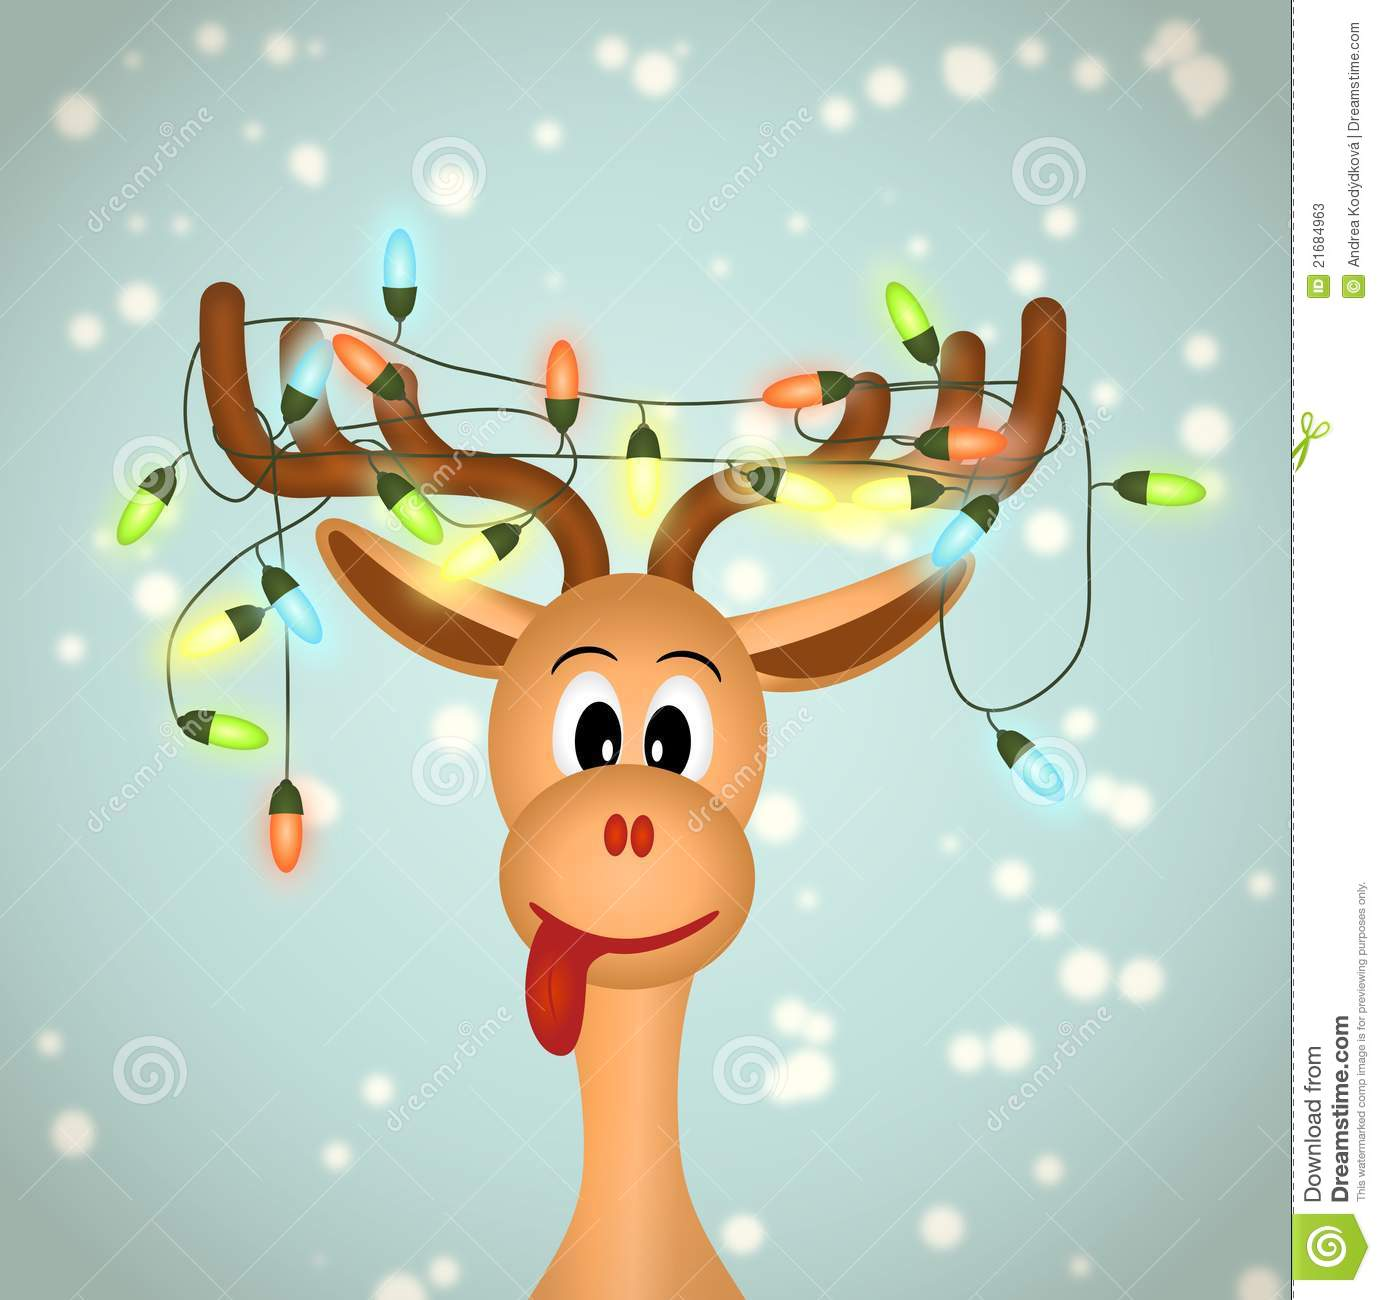 Funny Reindeer With Christmas Lights Tangled In Antlers   Illustration